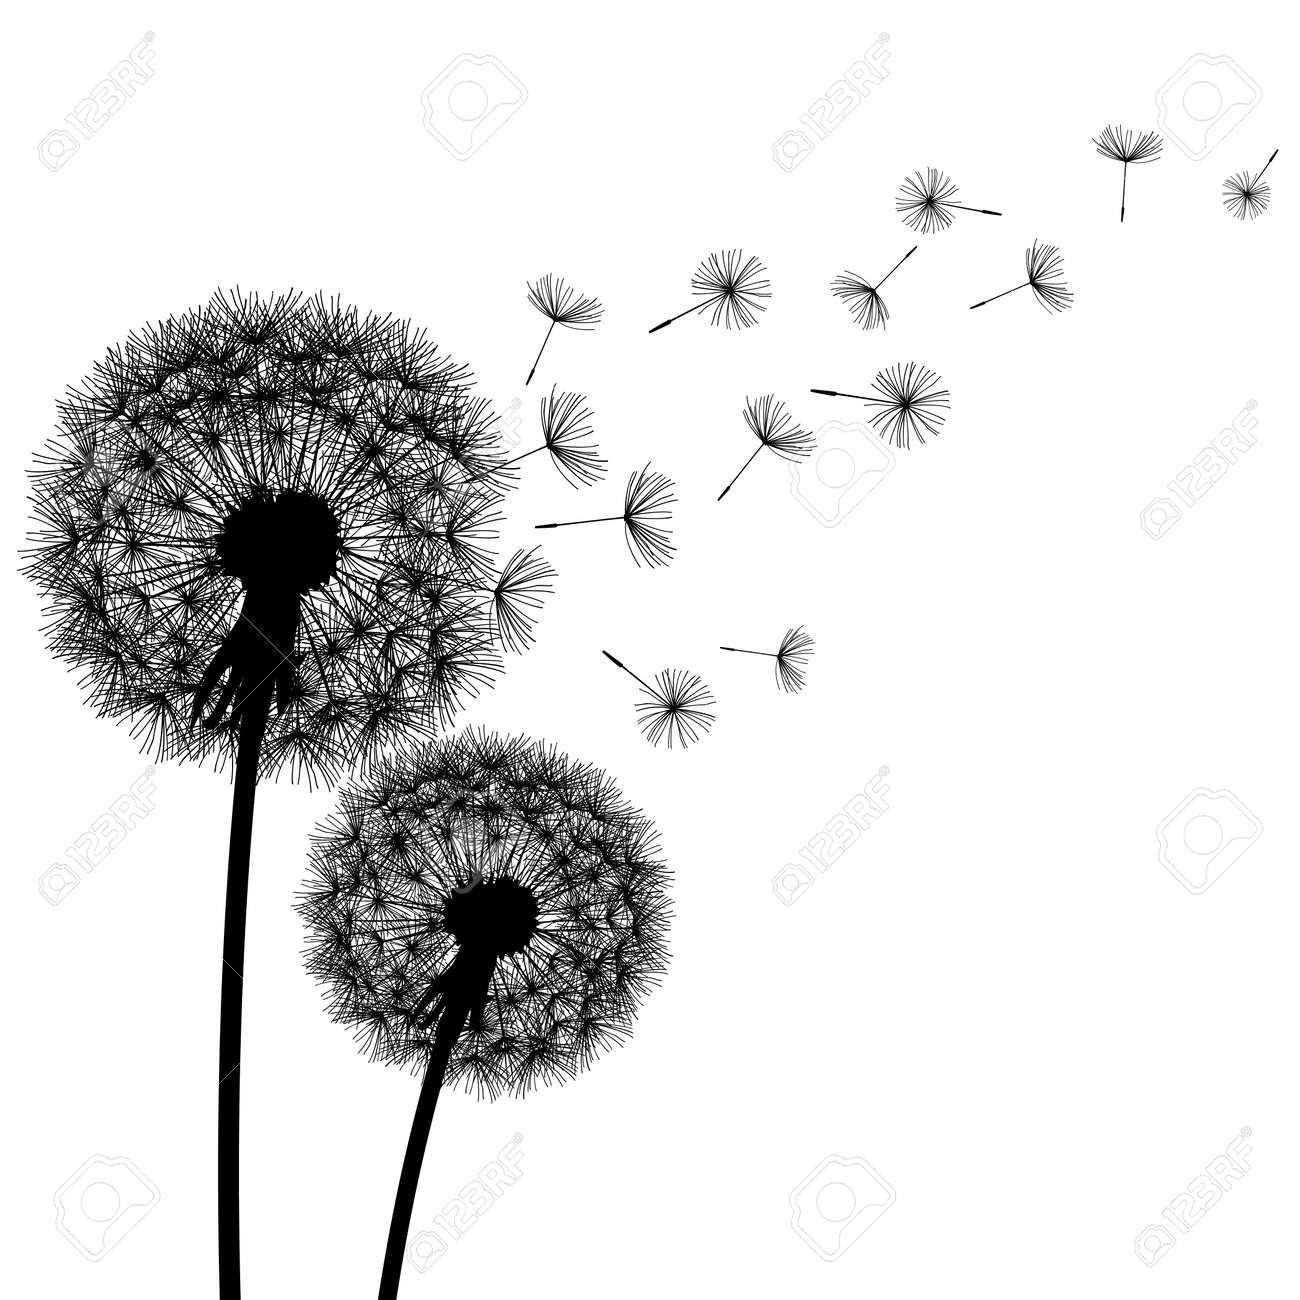 Two Delicate Black Dandelions Silhouette With Flying Fluff On White Background Floral Modern Stylish Wallpaper